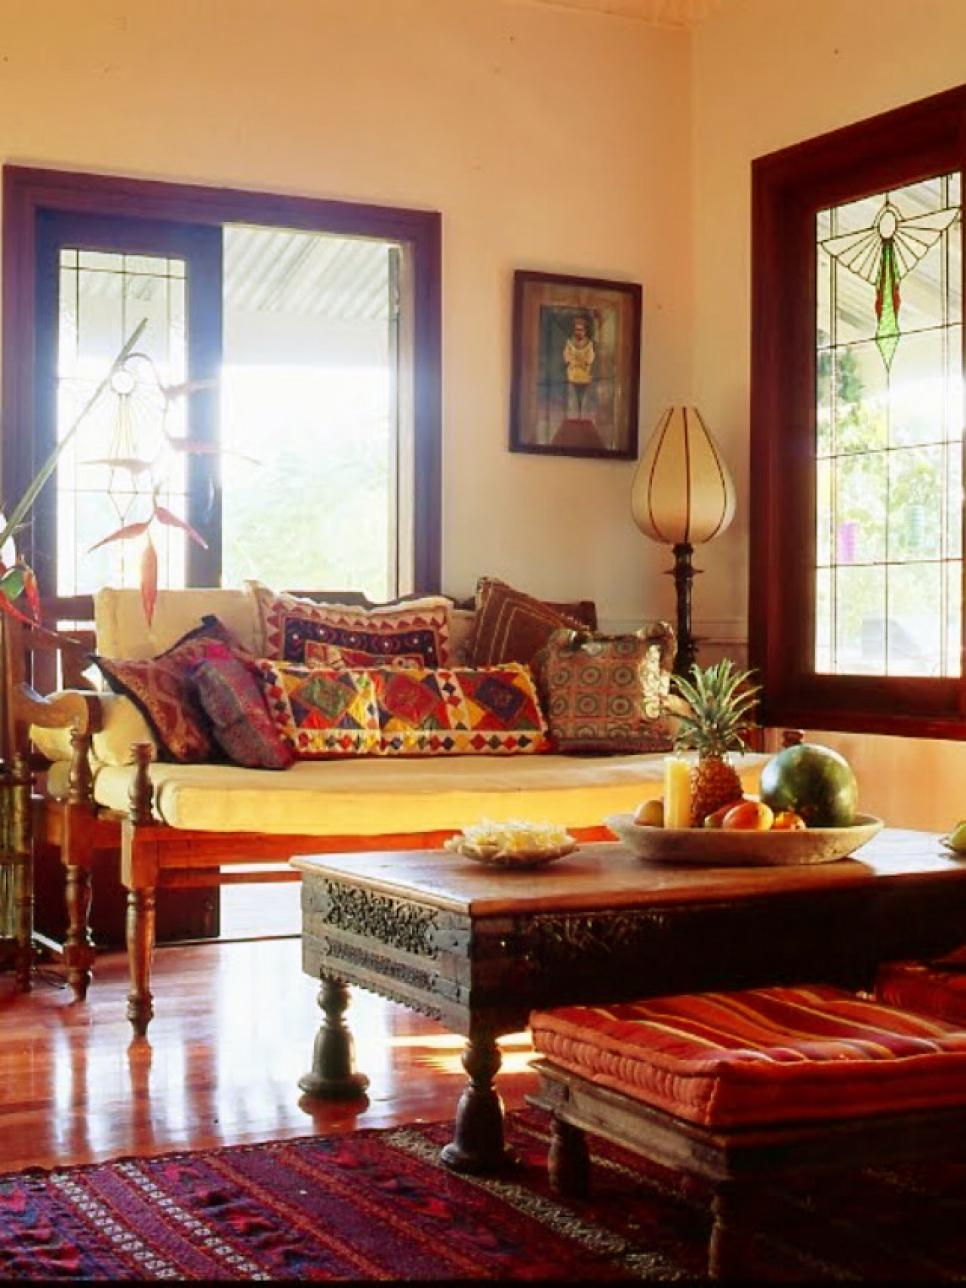 the east coast desi: Living with what you Love (Home Tour ...